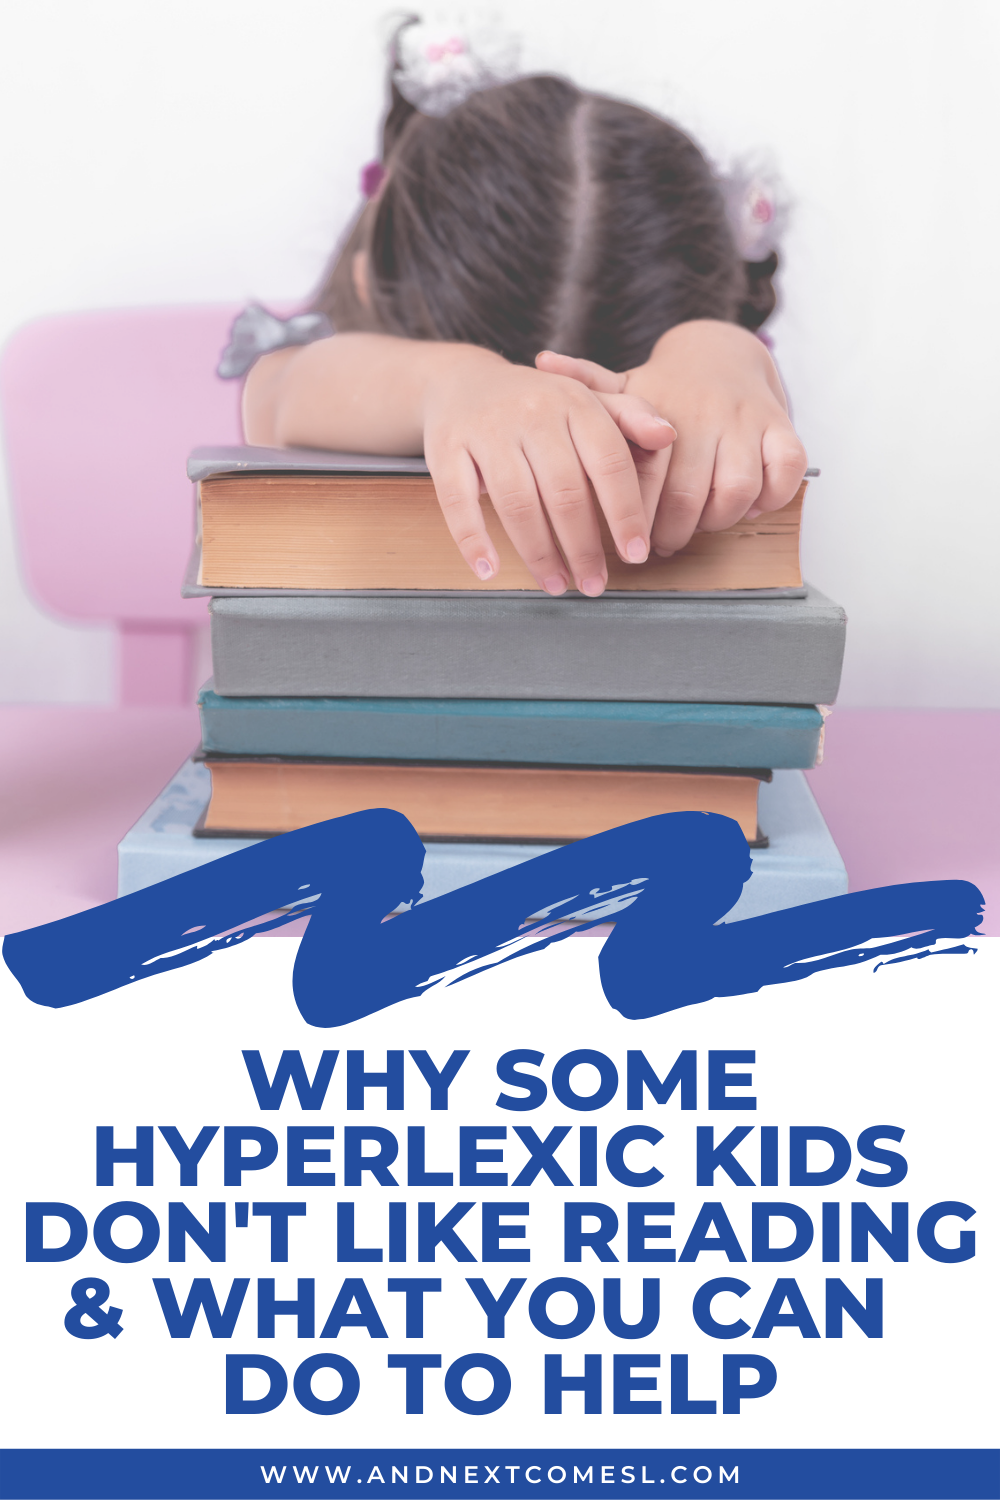 Reasons why your hyperlexic child suddenly hates to read (even though they can read!) and what you can do to help